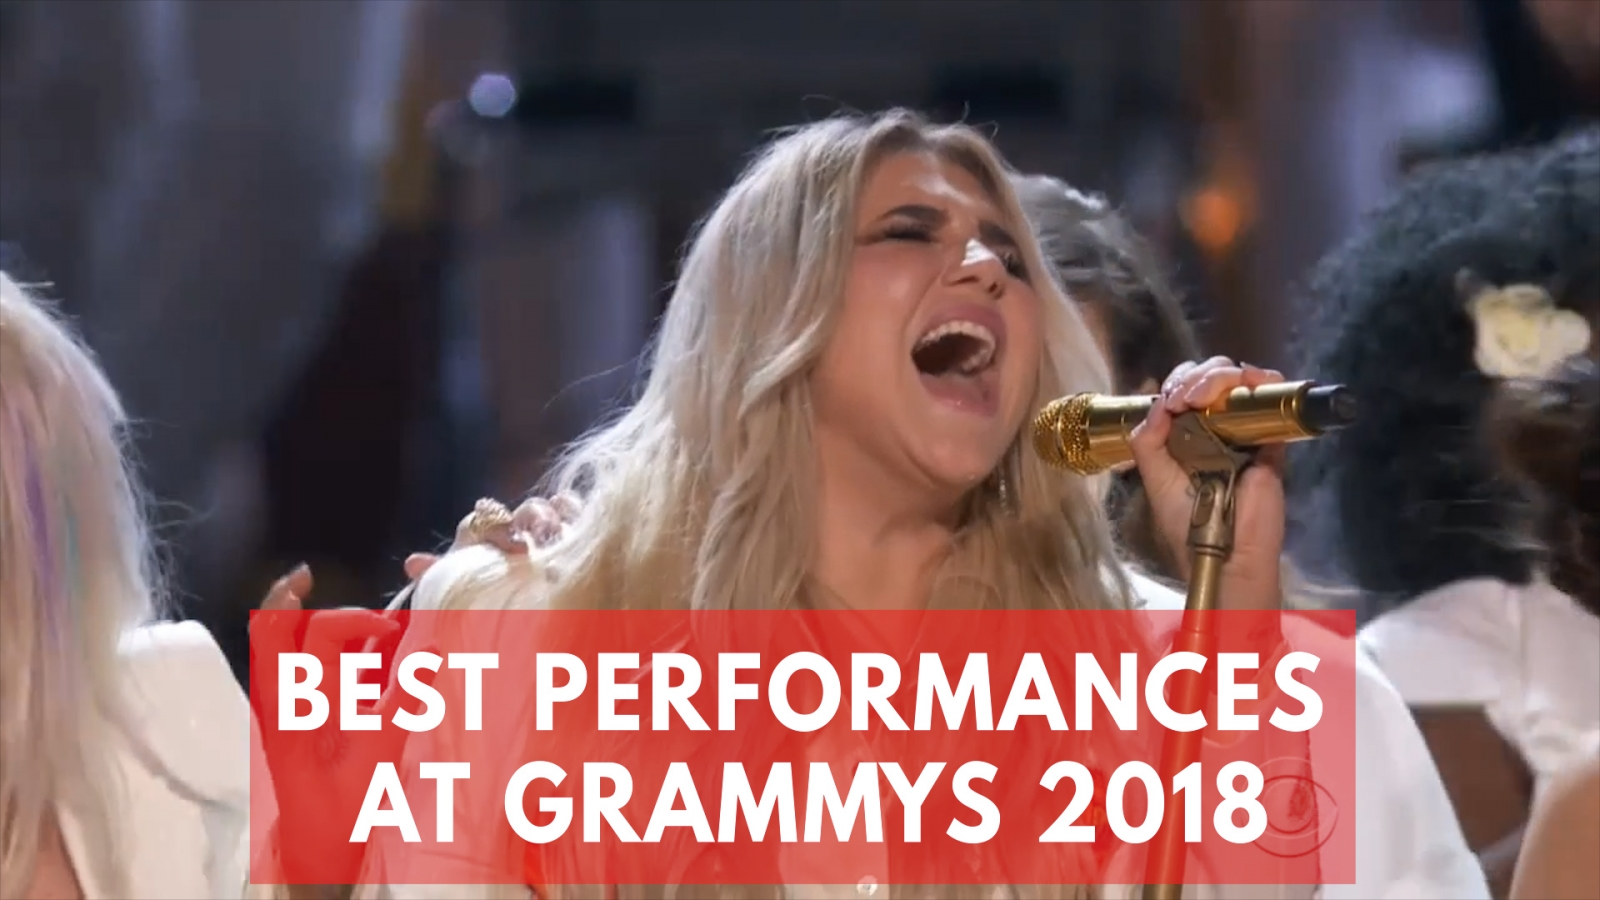 Best performances at Grammys 2018: From Kendrick Lamar to Pink